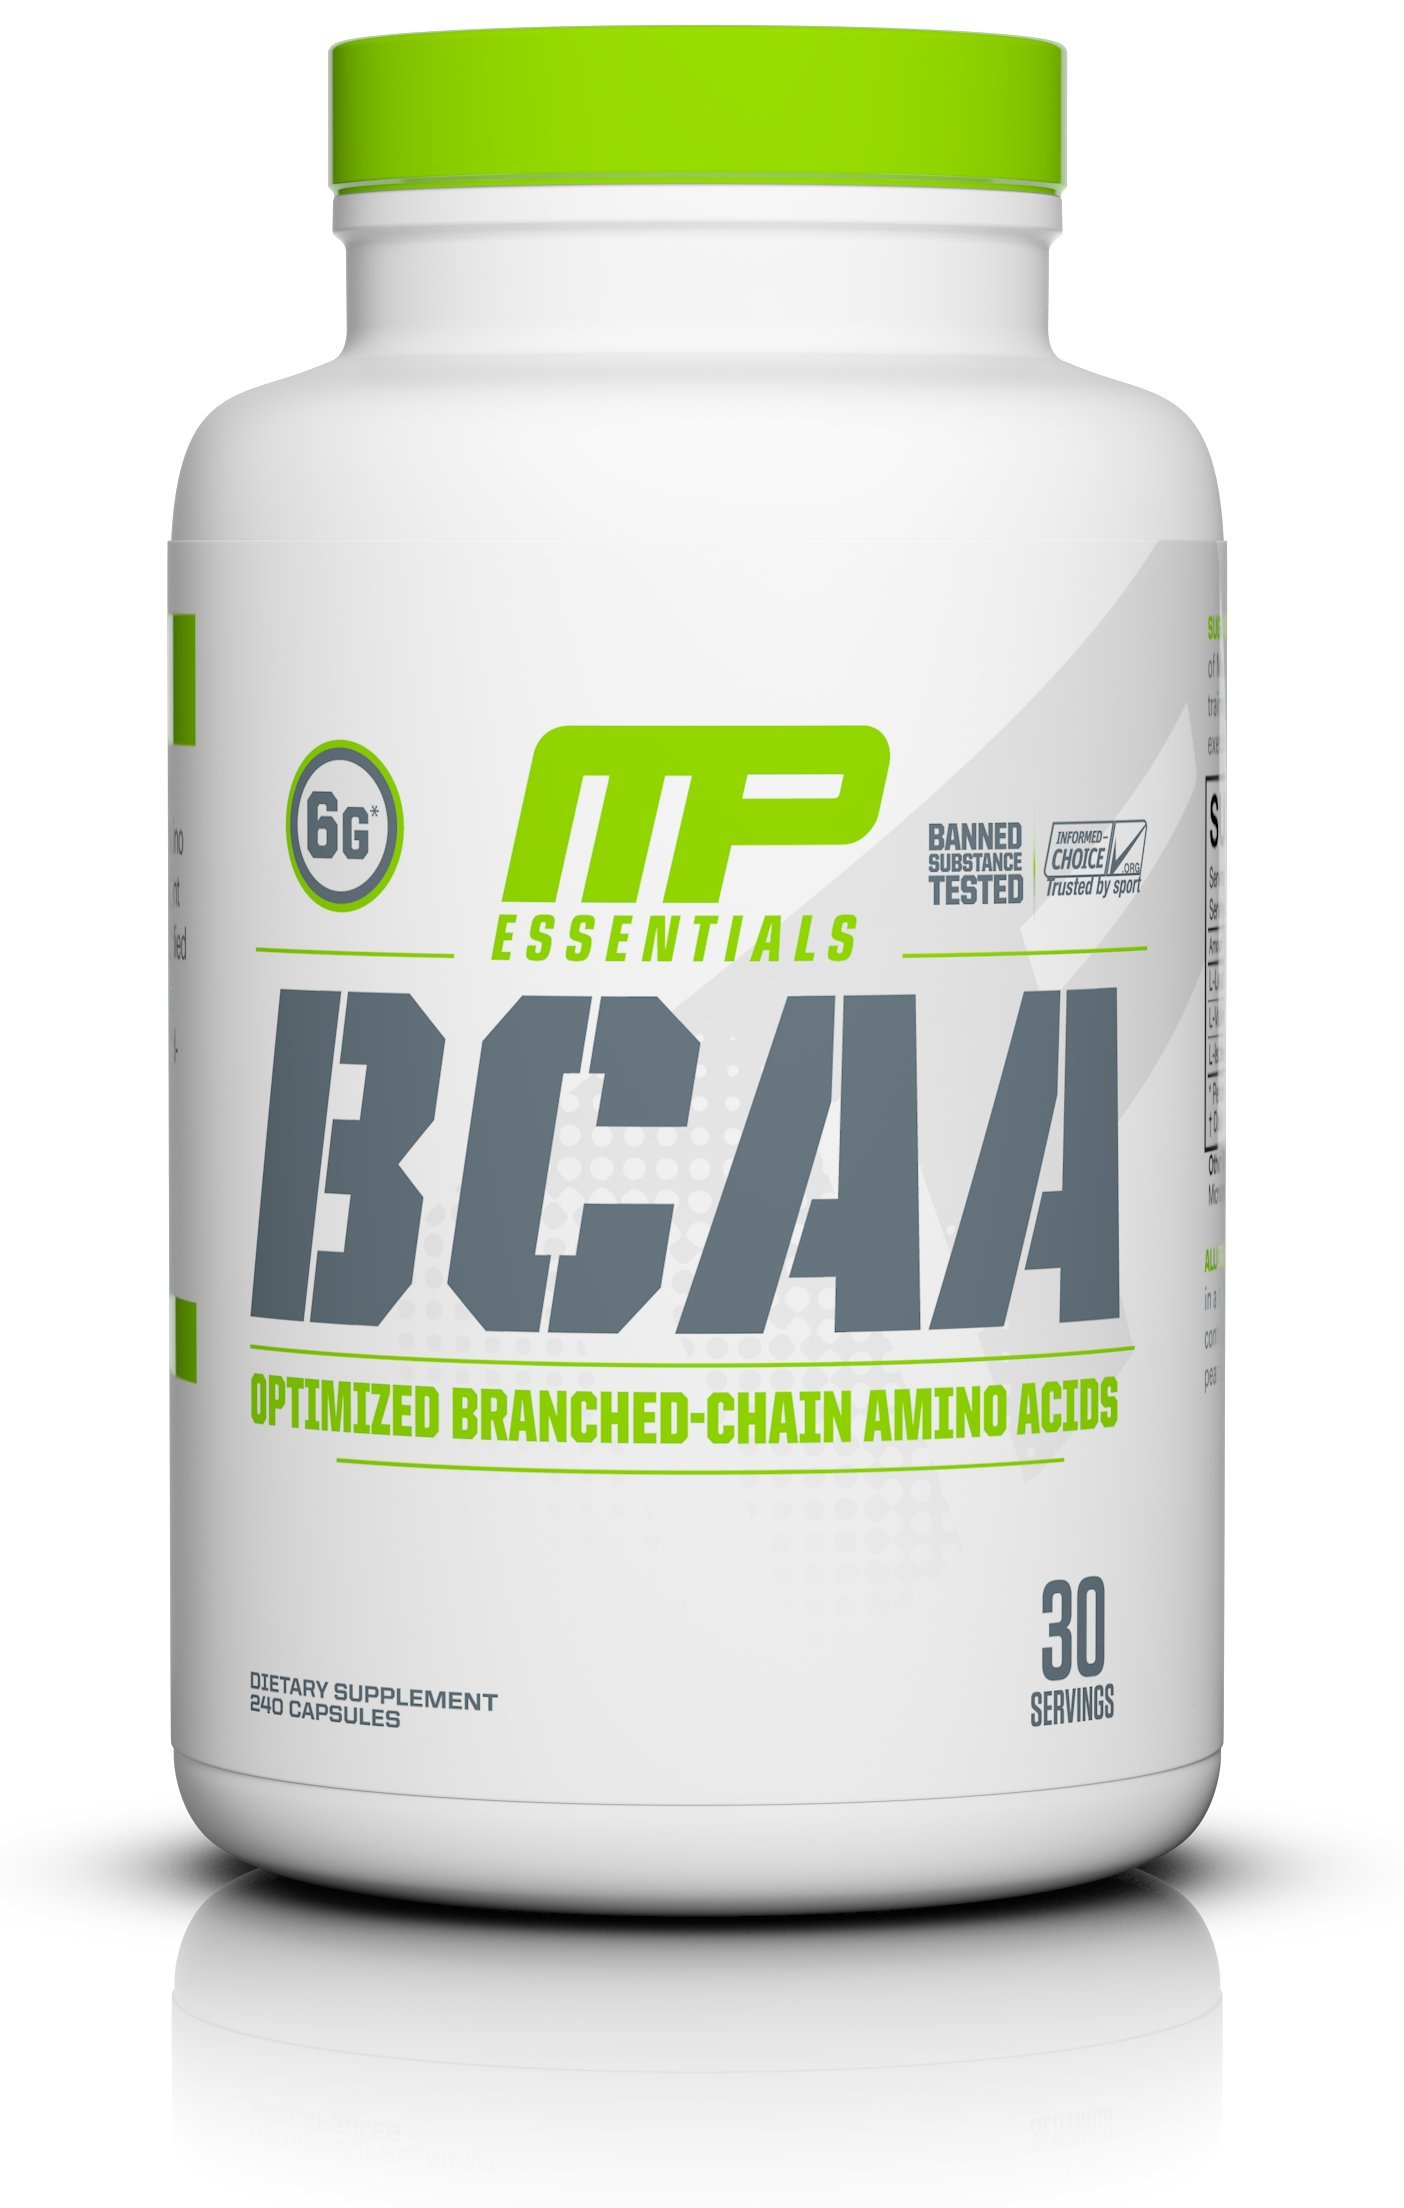 MusclePharm BCAA Caps, 6 Grams of BCAAs Amino Acids, Post Workout Recovery Drink for Muscle Recovery and Muscle Building, Unflavored, 30 Servings